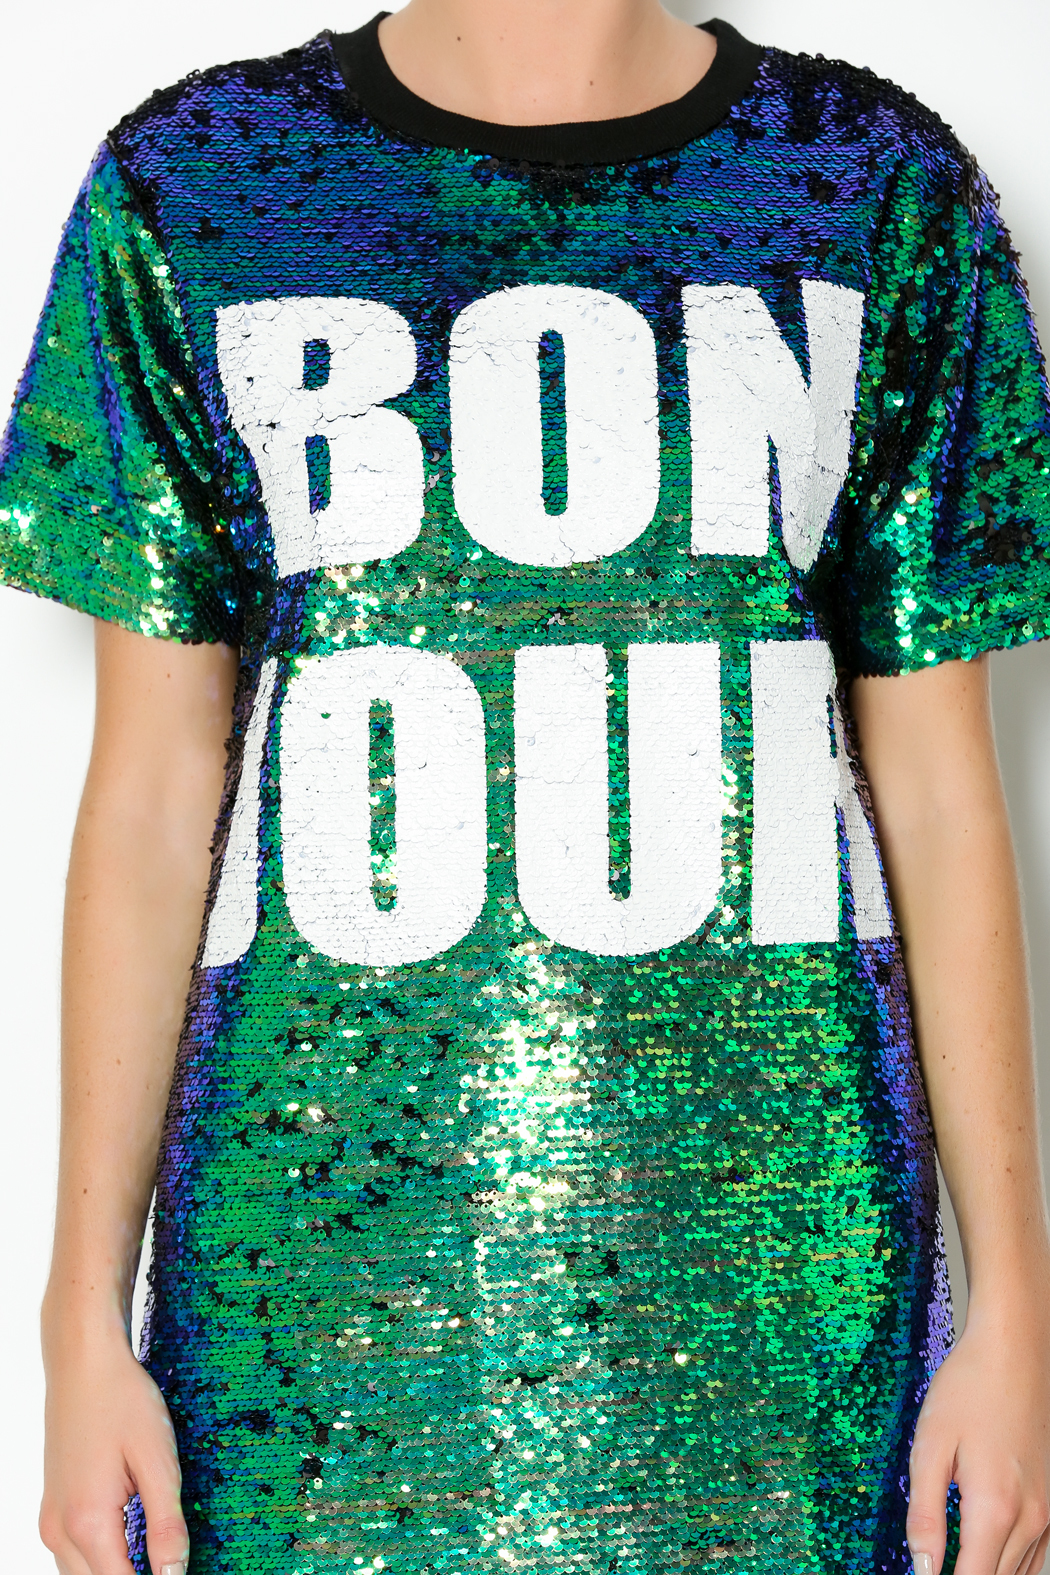 0e201eda8b9 Kling Spain Sequin Bonjour Dress from New York by LOVE ONLY NYC ...